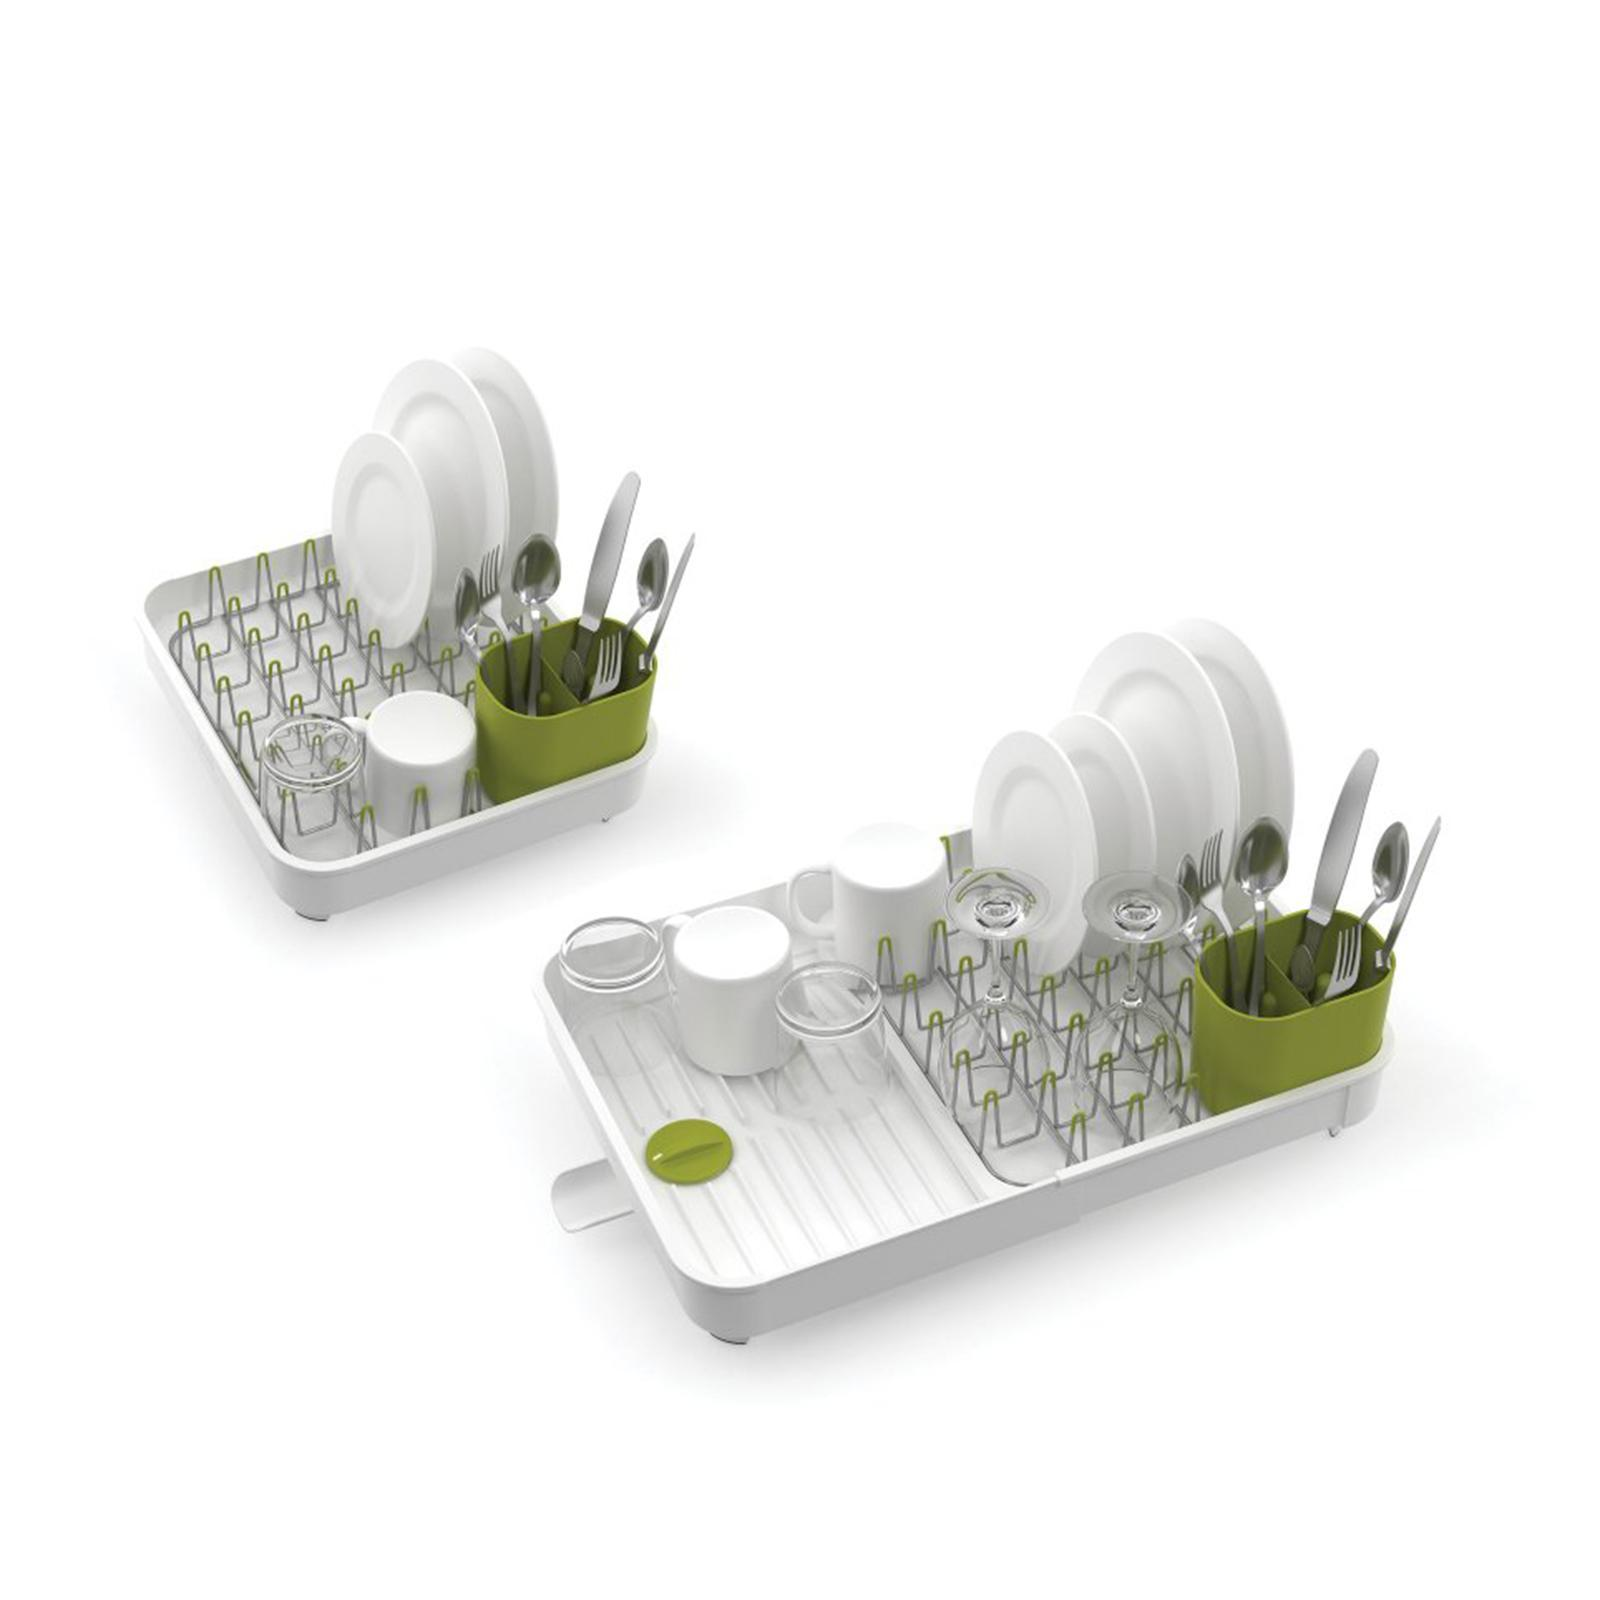 Joseph Joseph Expandable Dish Rack With Draining Plug - White/Green